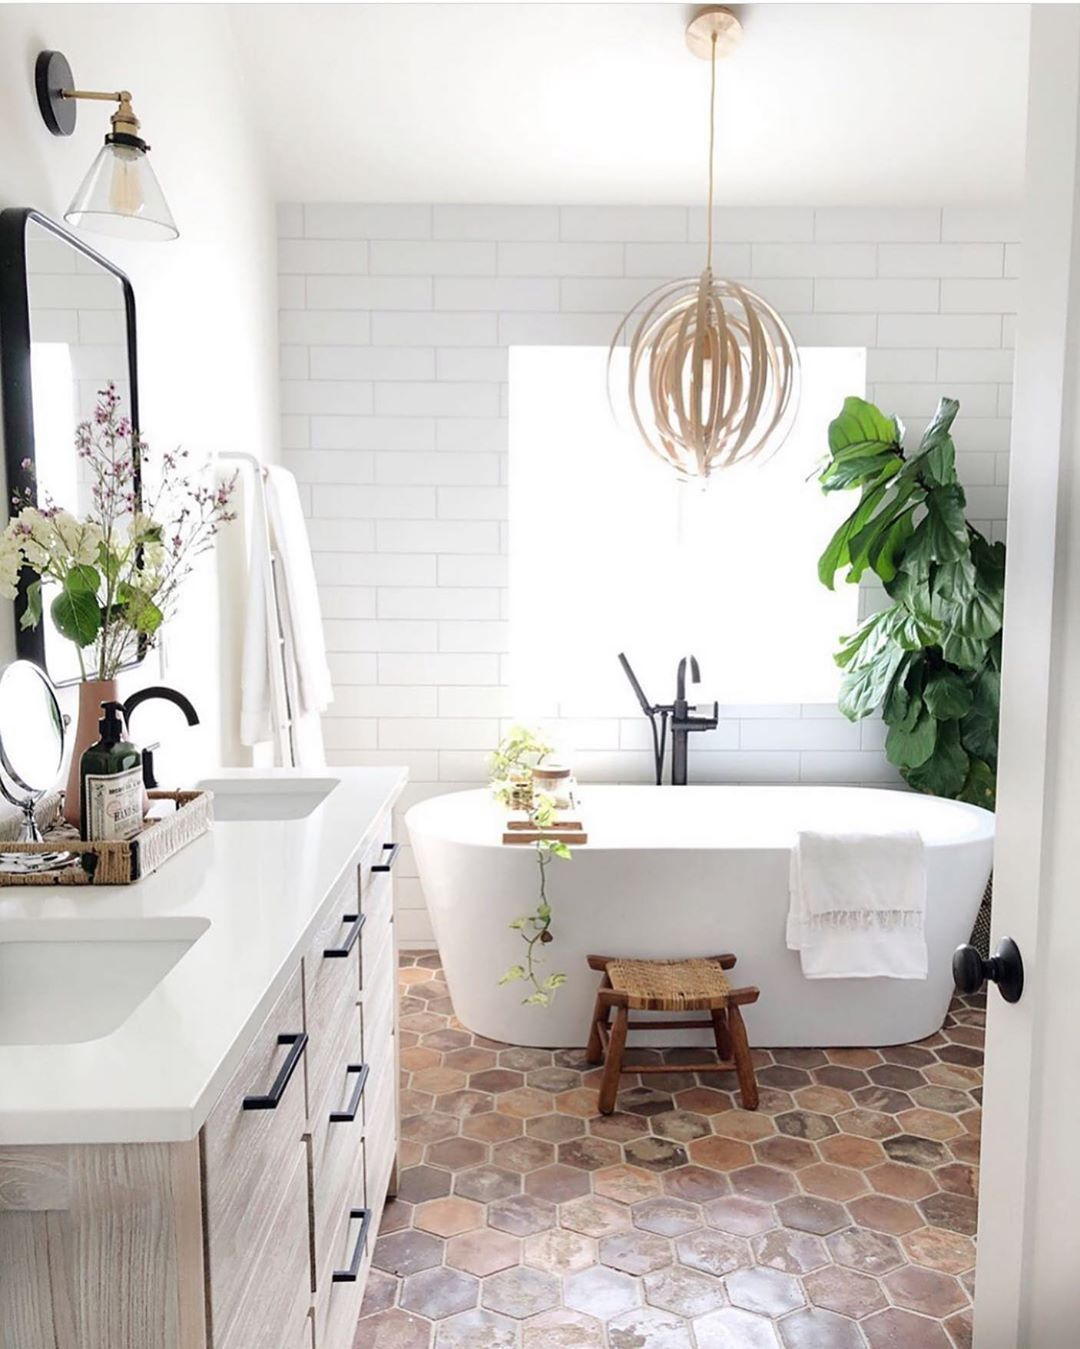 Mid Century Boho Farmhouse On Instagram Seriously Gorgeous Bathroom By Kdiondesign Just H Top 10 Bathroom Designs Bathroom Design Trends Bathroom Decor